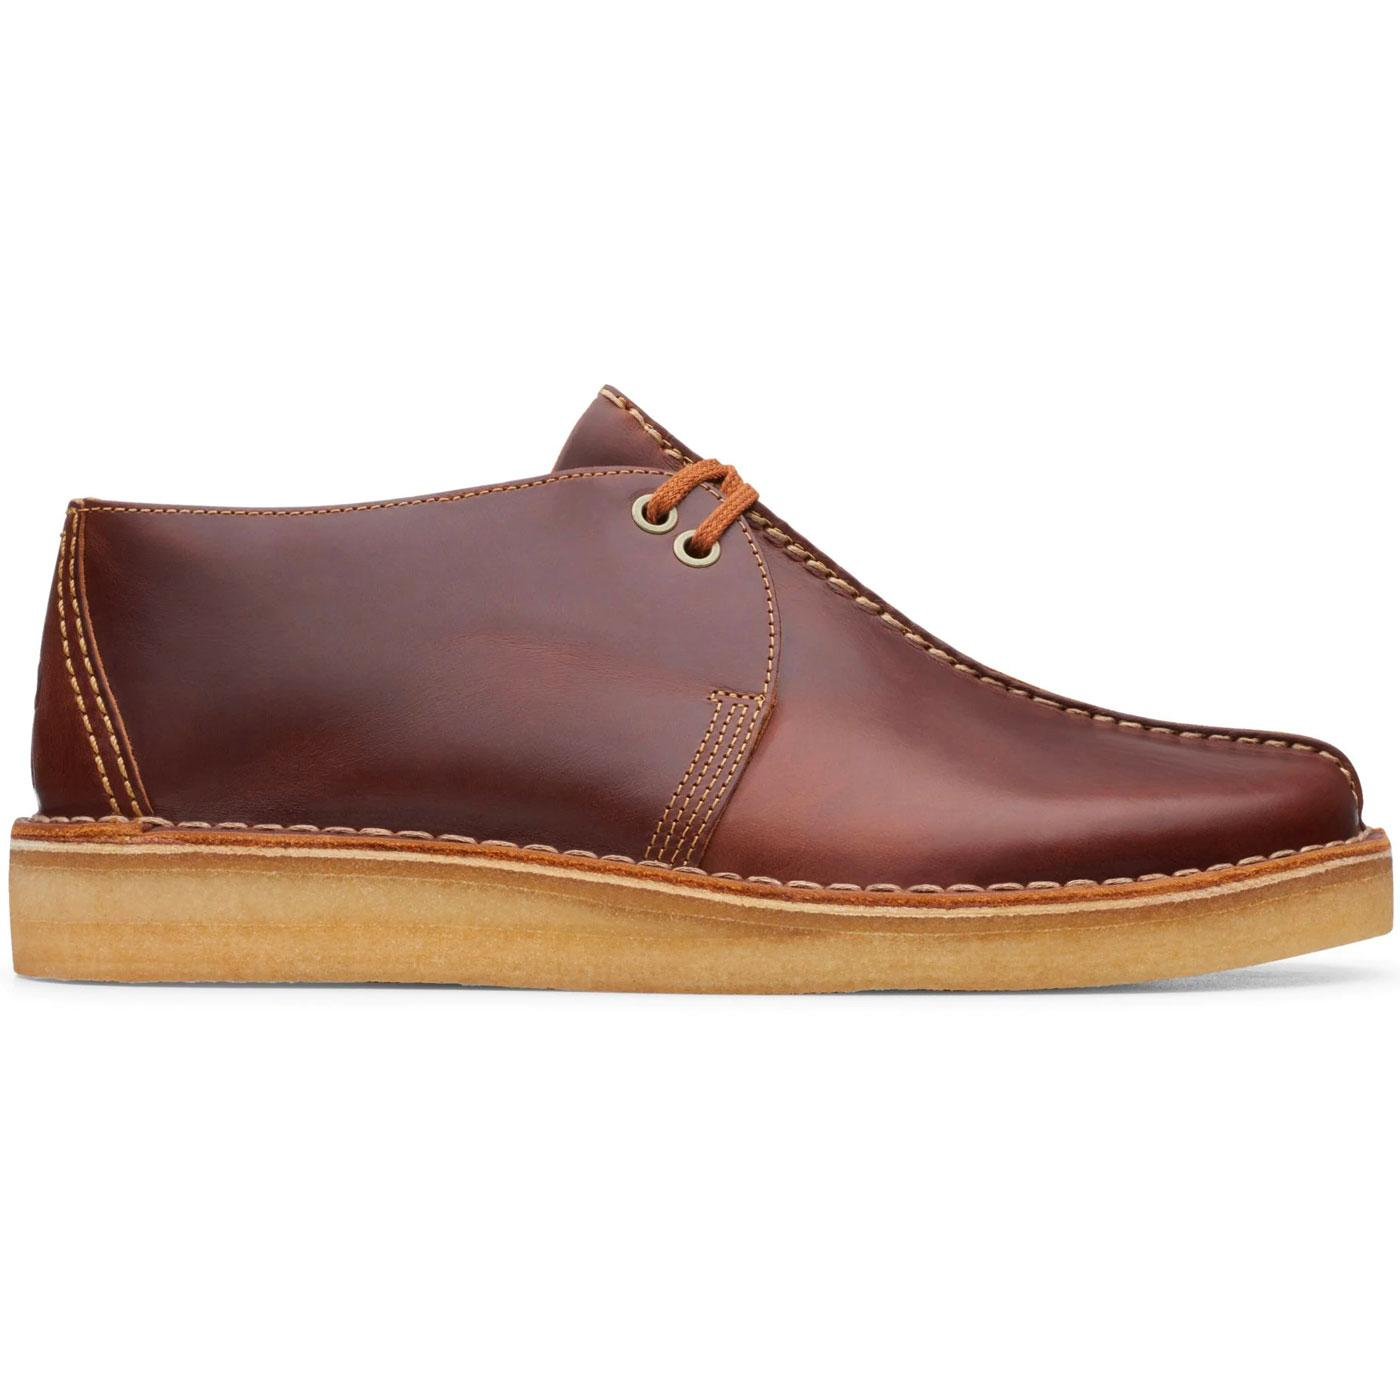 Desert Trek CLARKS ORIGINALS Tan Leather Shoes